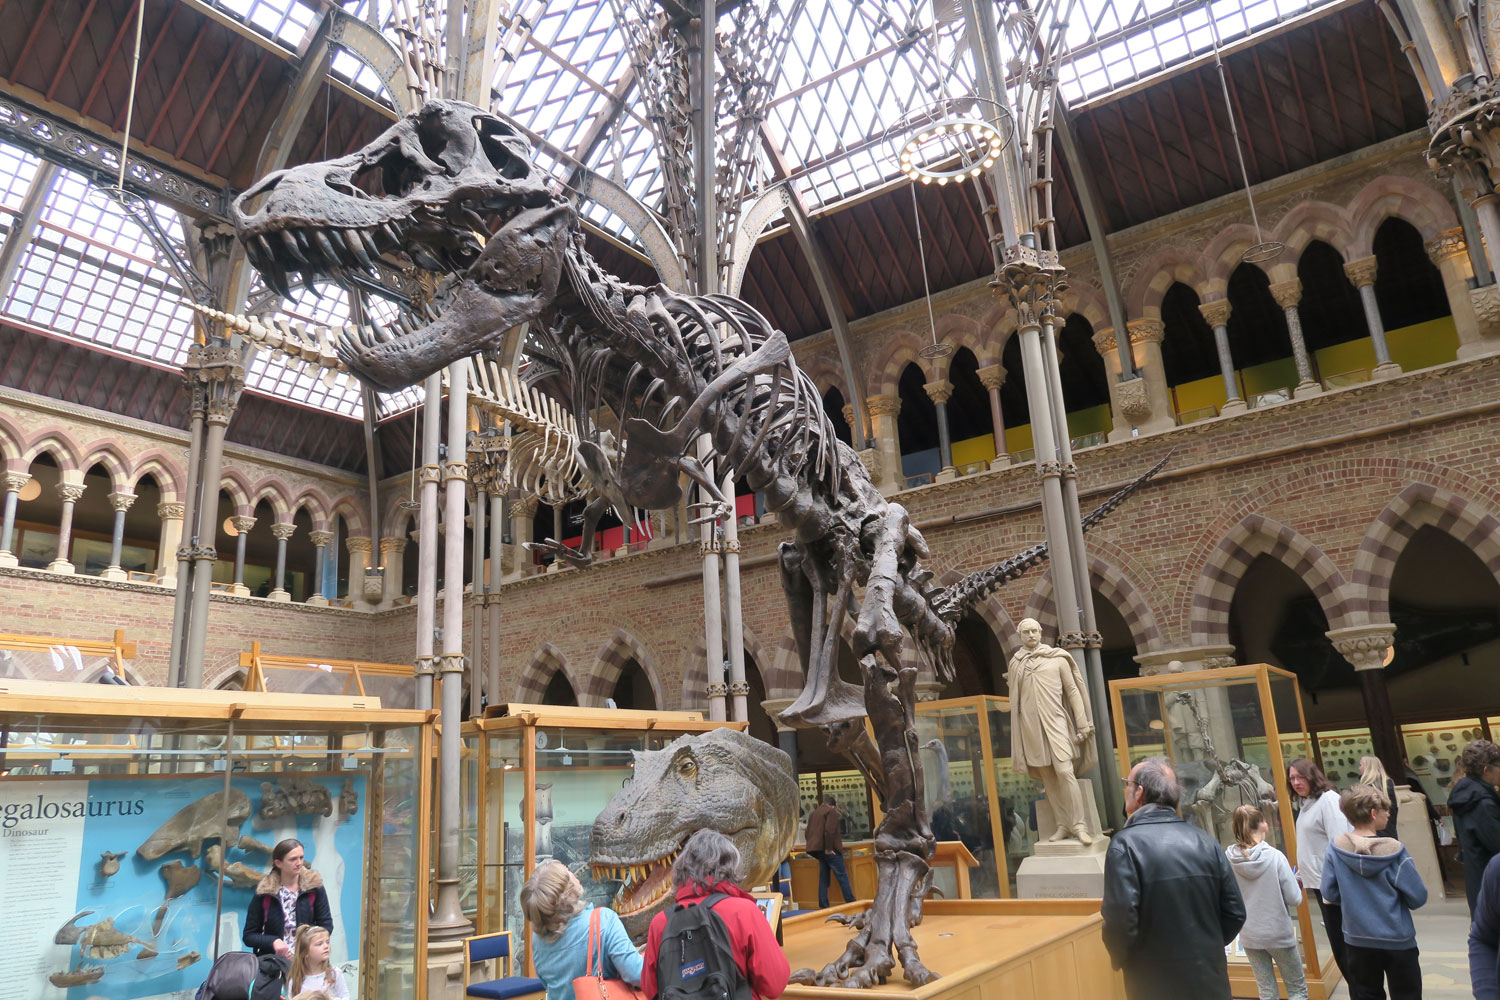 Cast of a 'small' T-Rex fossil, found by one of those 'amateur' fossil hunter